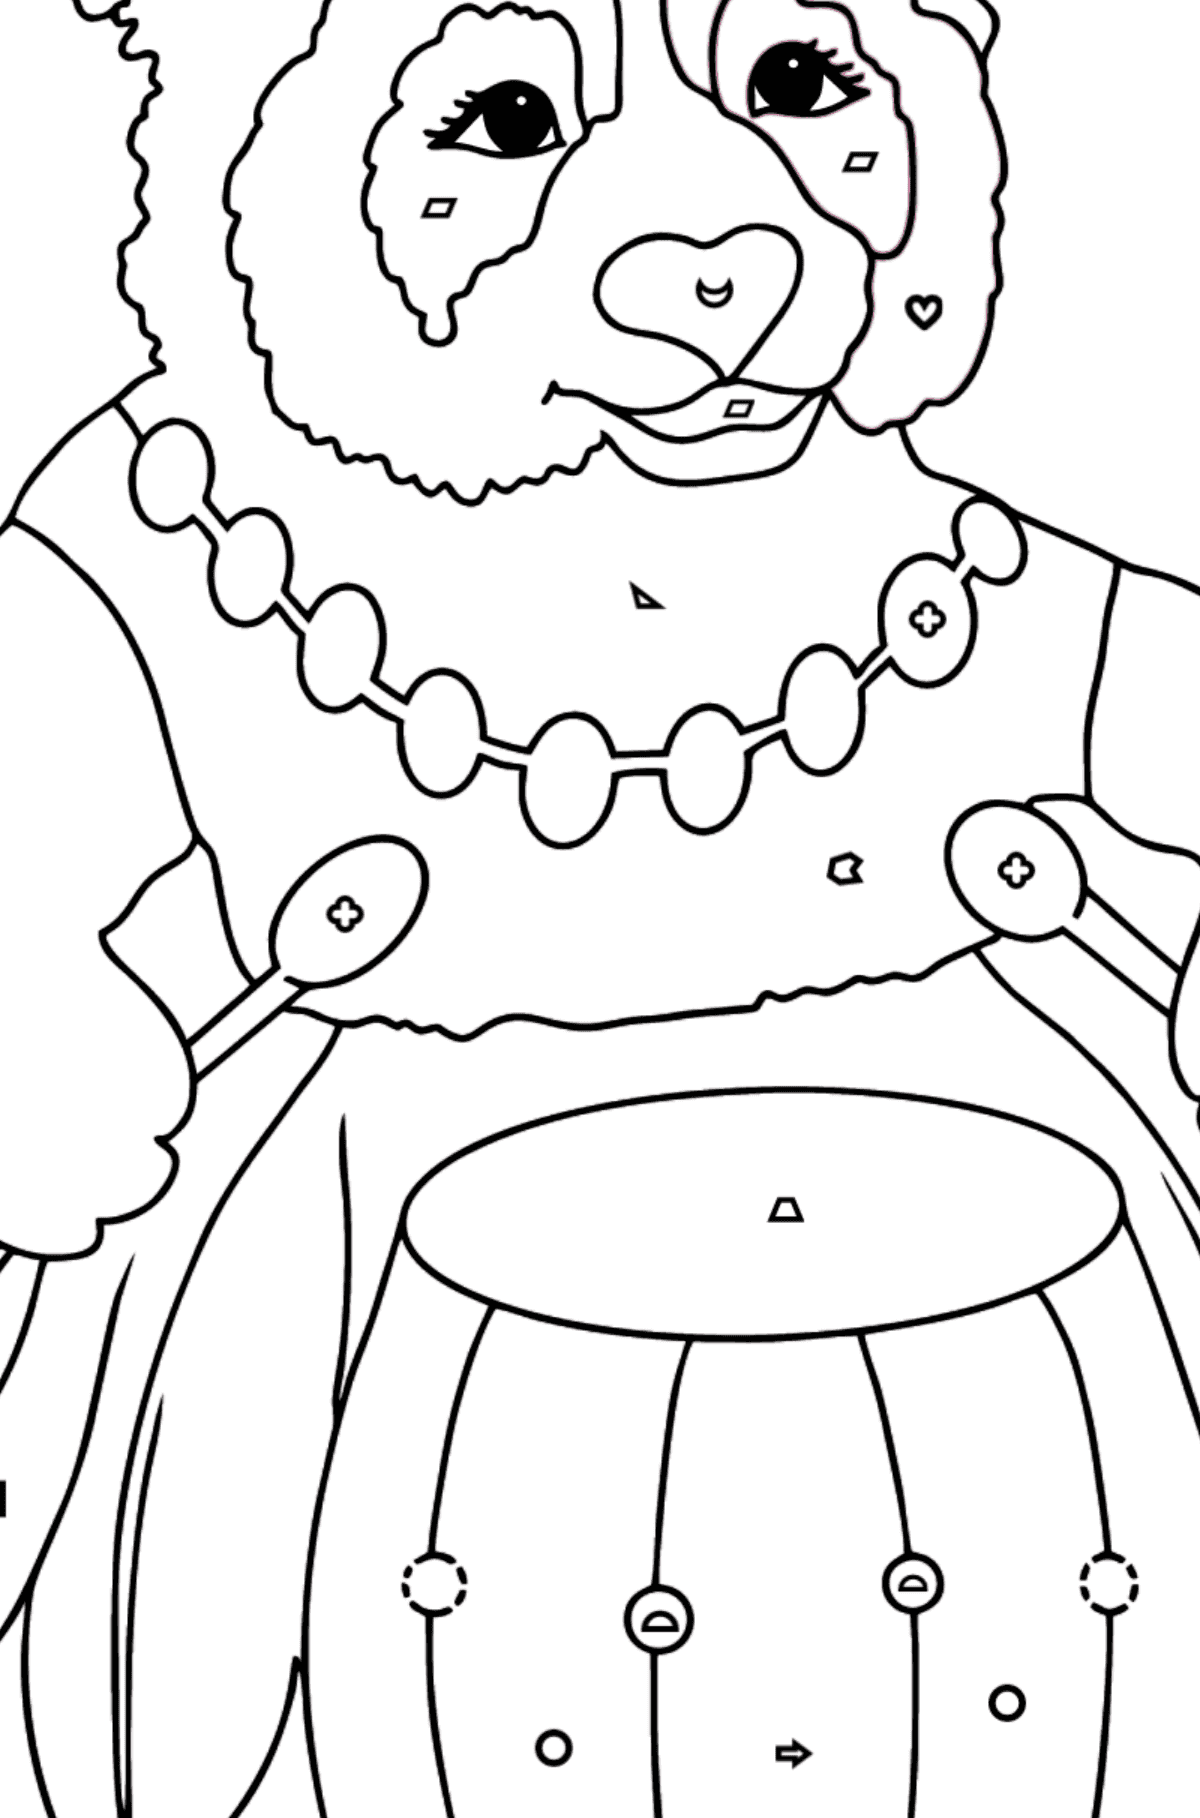 Coloring Page - A Panda and a Drum - Coloring by Geometric Shapes for Kids